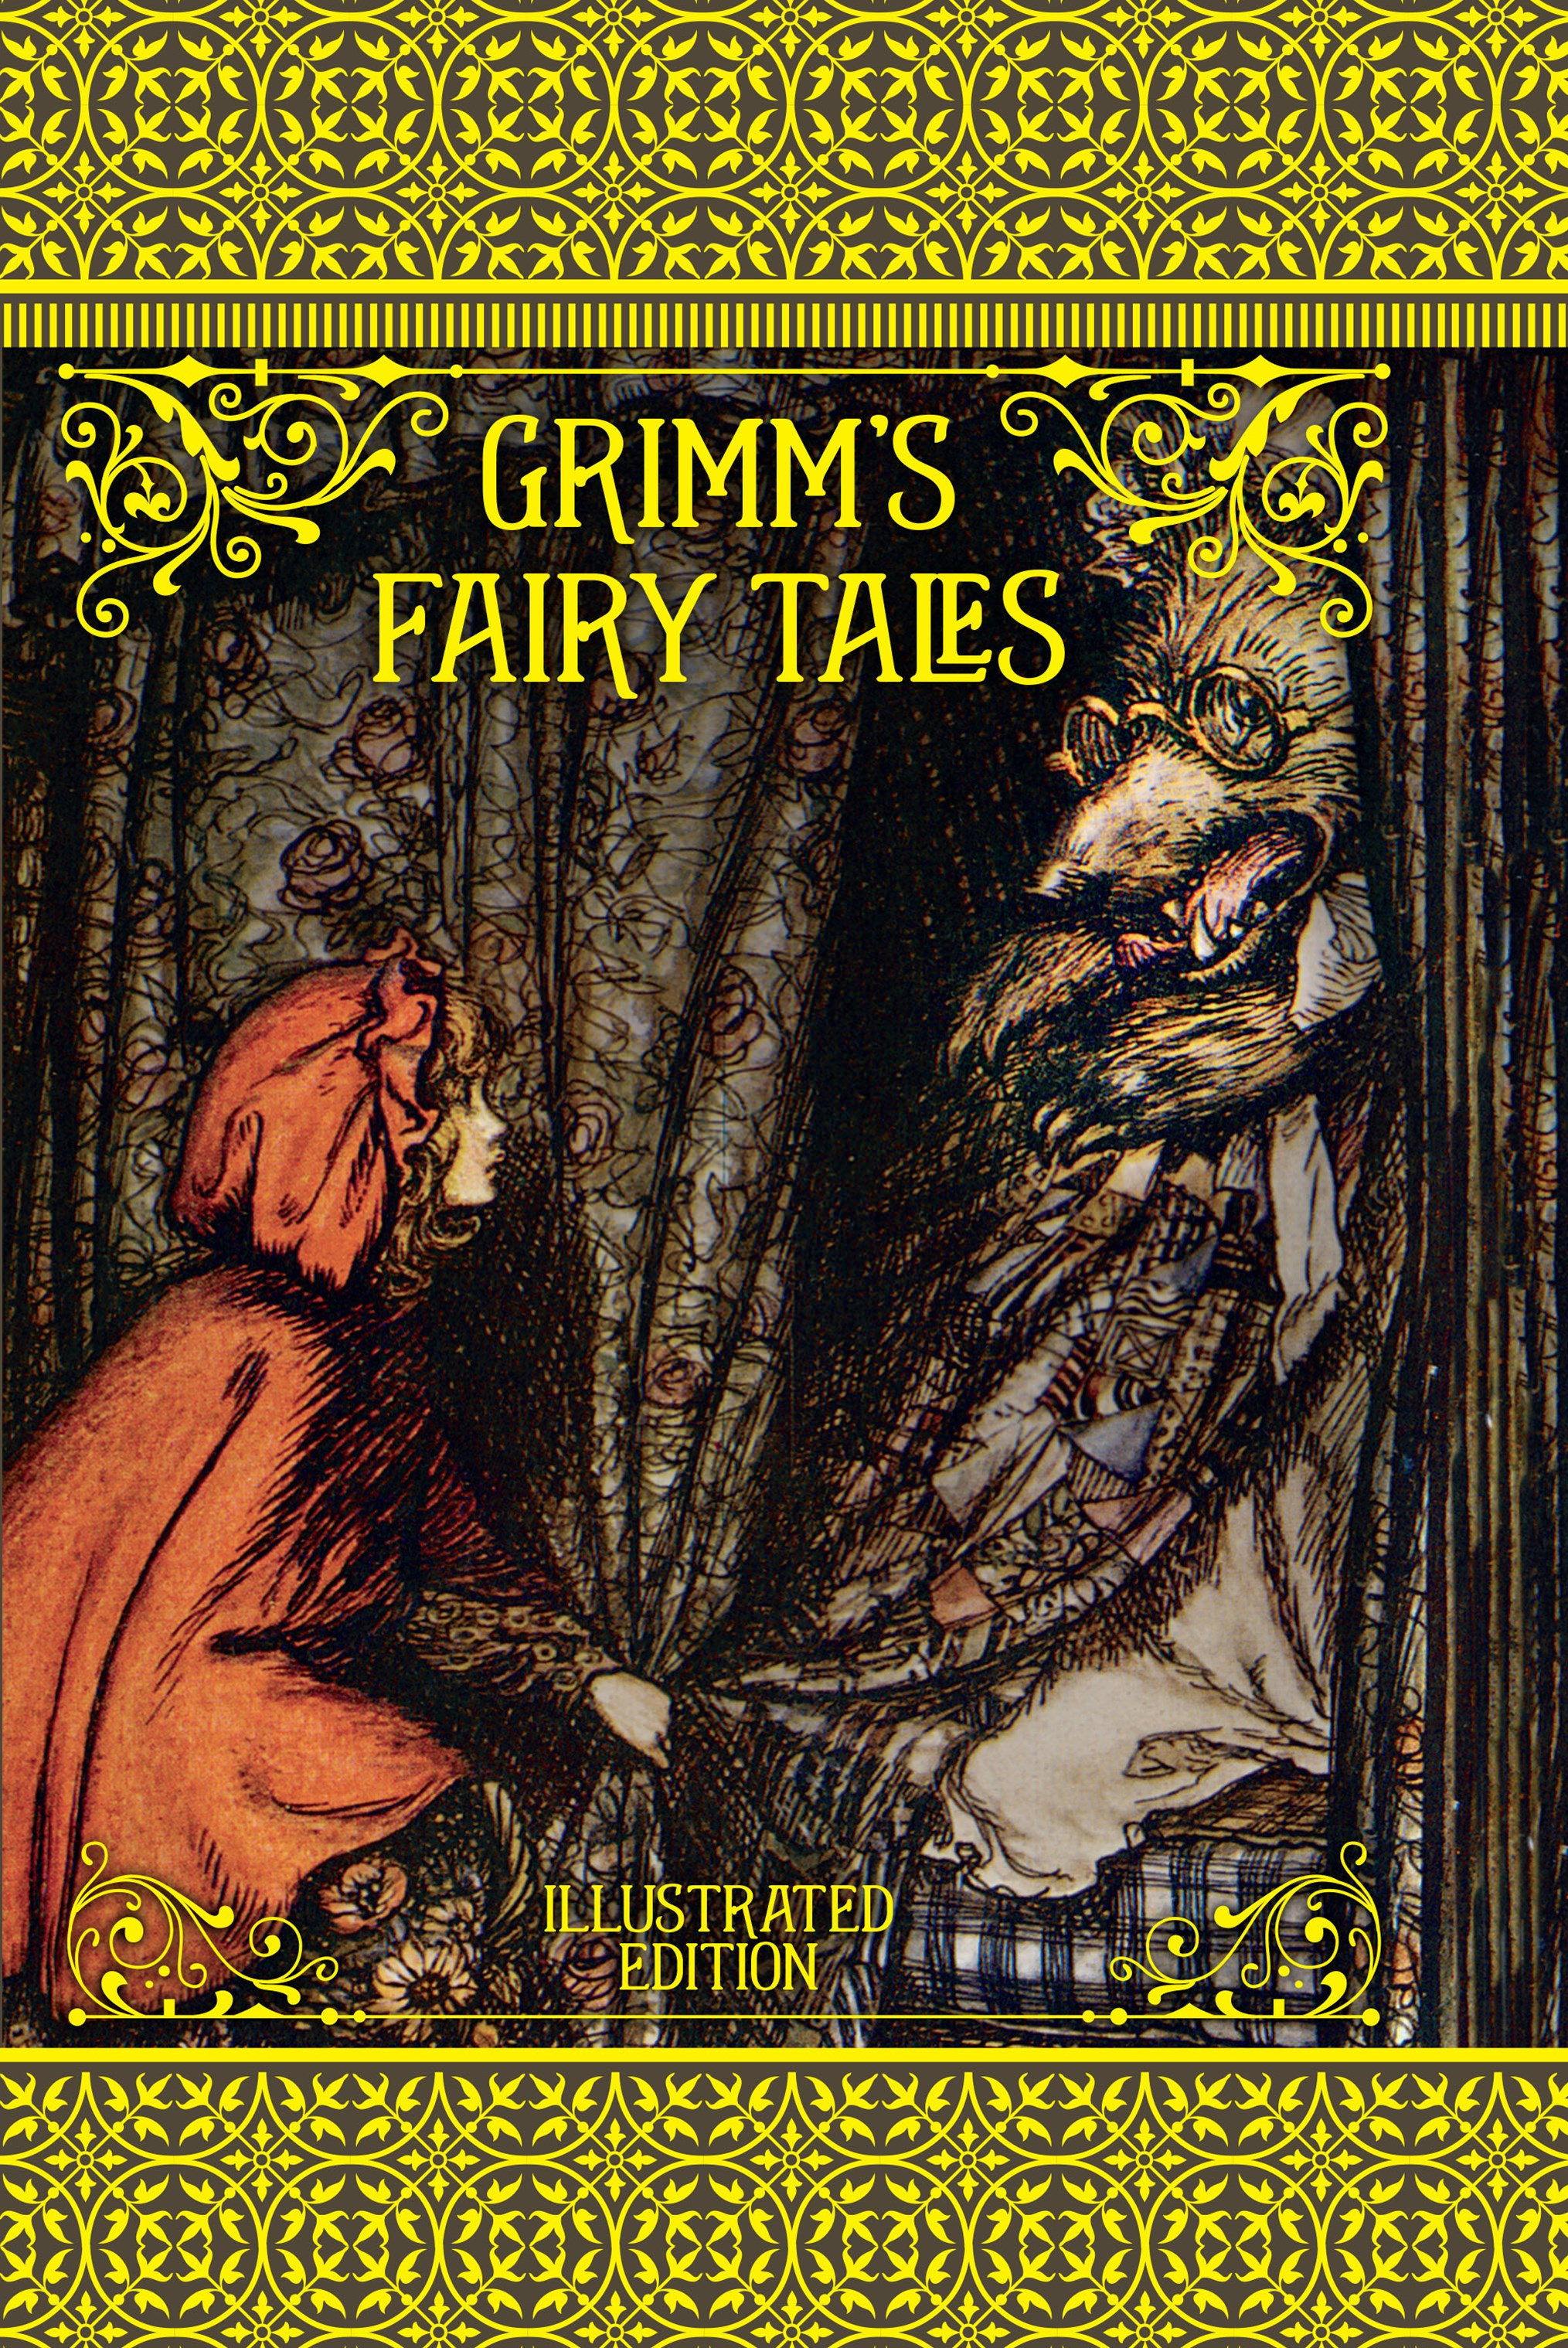 Grimm's Fairy Tales:Illustrated Edition